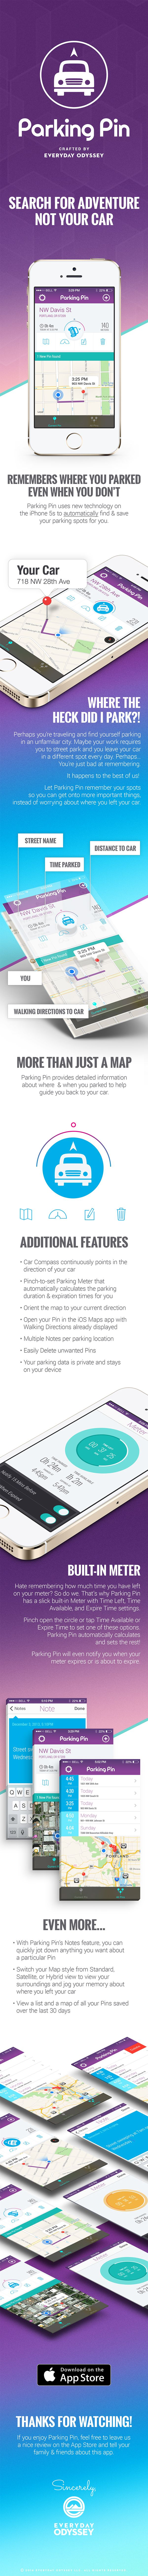 Parking Pin iOS App by Everyday Odyssey ™, via Behance -- iPhone 5s, App, Apple, App Store, Apps, Top Charts, UI/UX Design, iOS Development, Product Development, Branding, Marketing, Applications, Mobile Tool, Software, User Interface, Navigation, Travel, Utilities, Item of the Day, Featured App, Where Did I Park, Forgot My Car, Find My Car, Car Locator, Remember Where I Parked, Auto Parked Car Finder, Automatic Pin Finder, Automatically Find Parking Spot, Parked Car Location